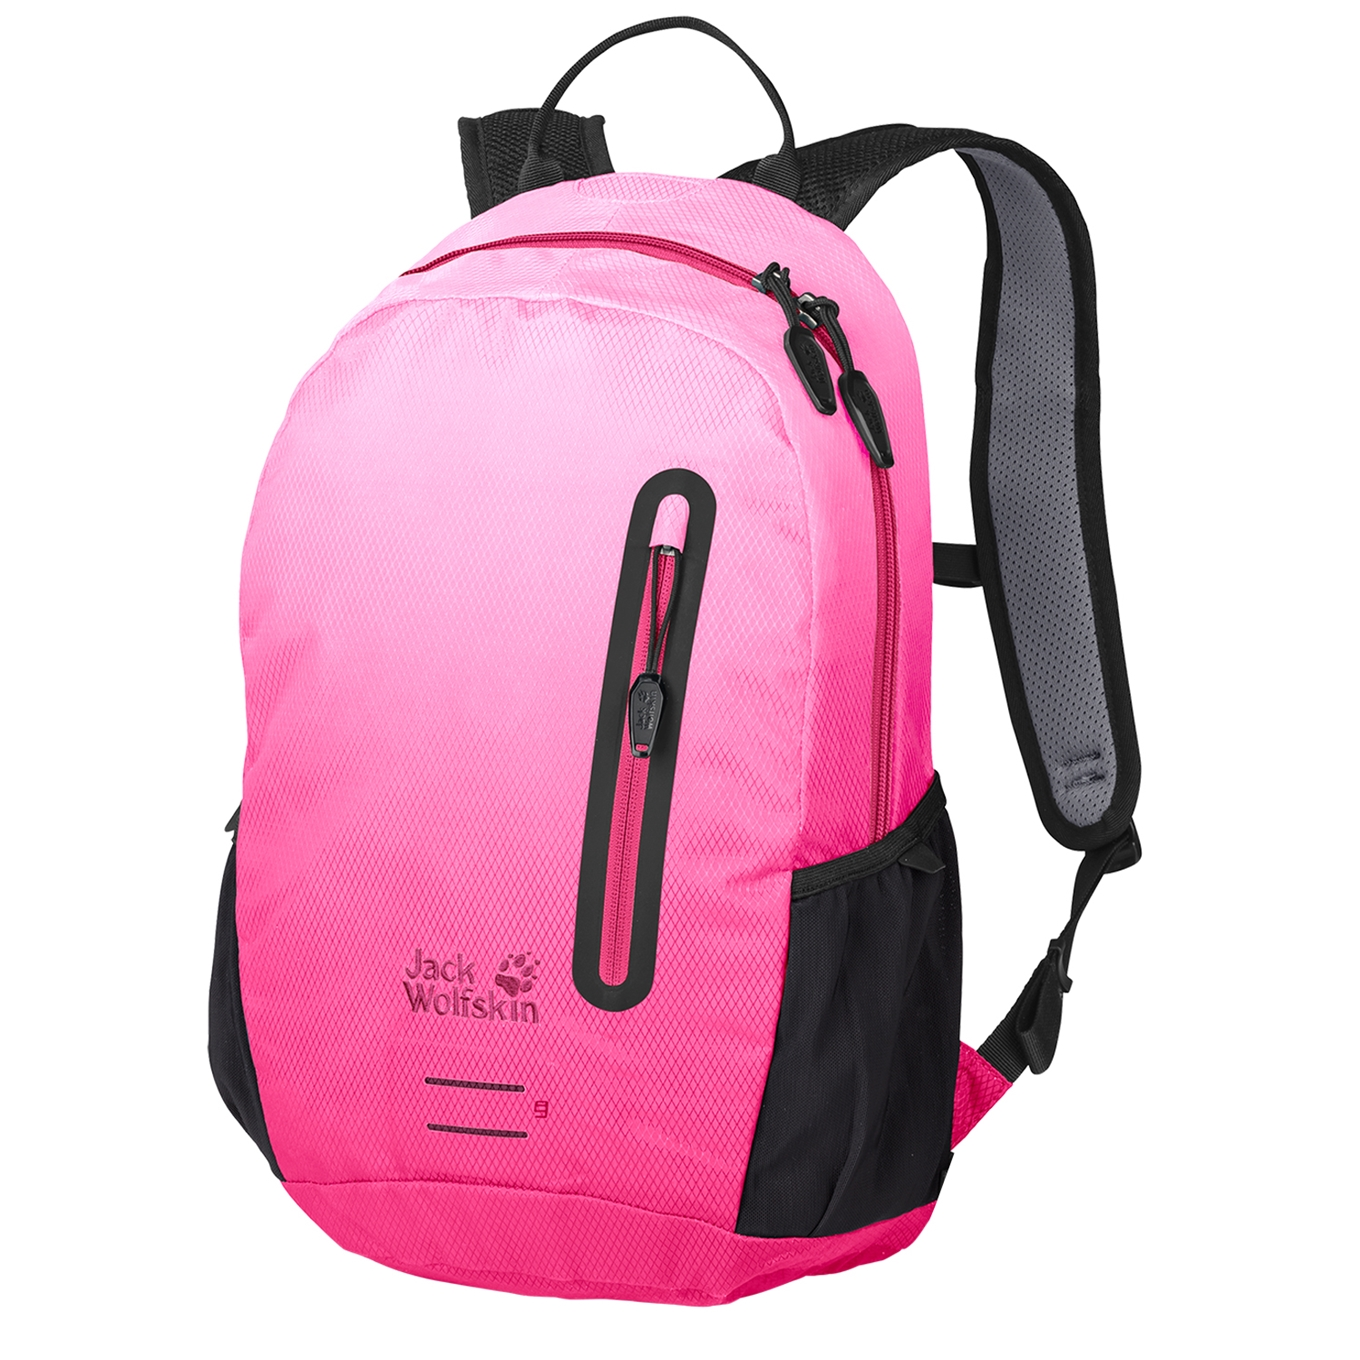 Jack Wolfskin Halo 12 Pack aurora pink backpack